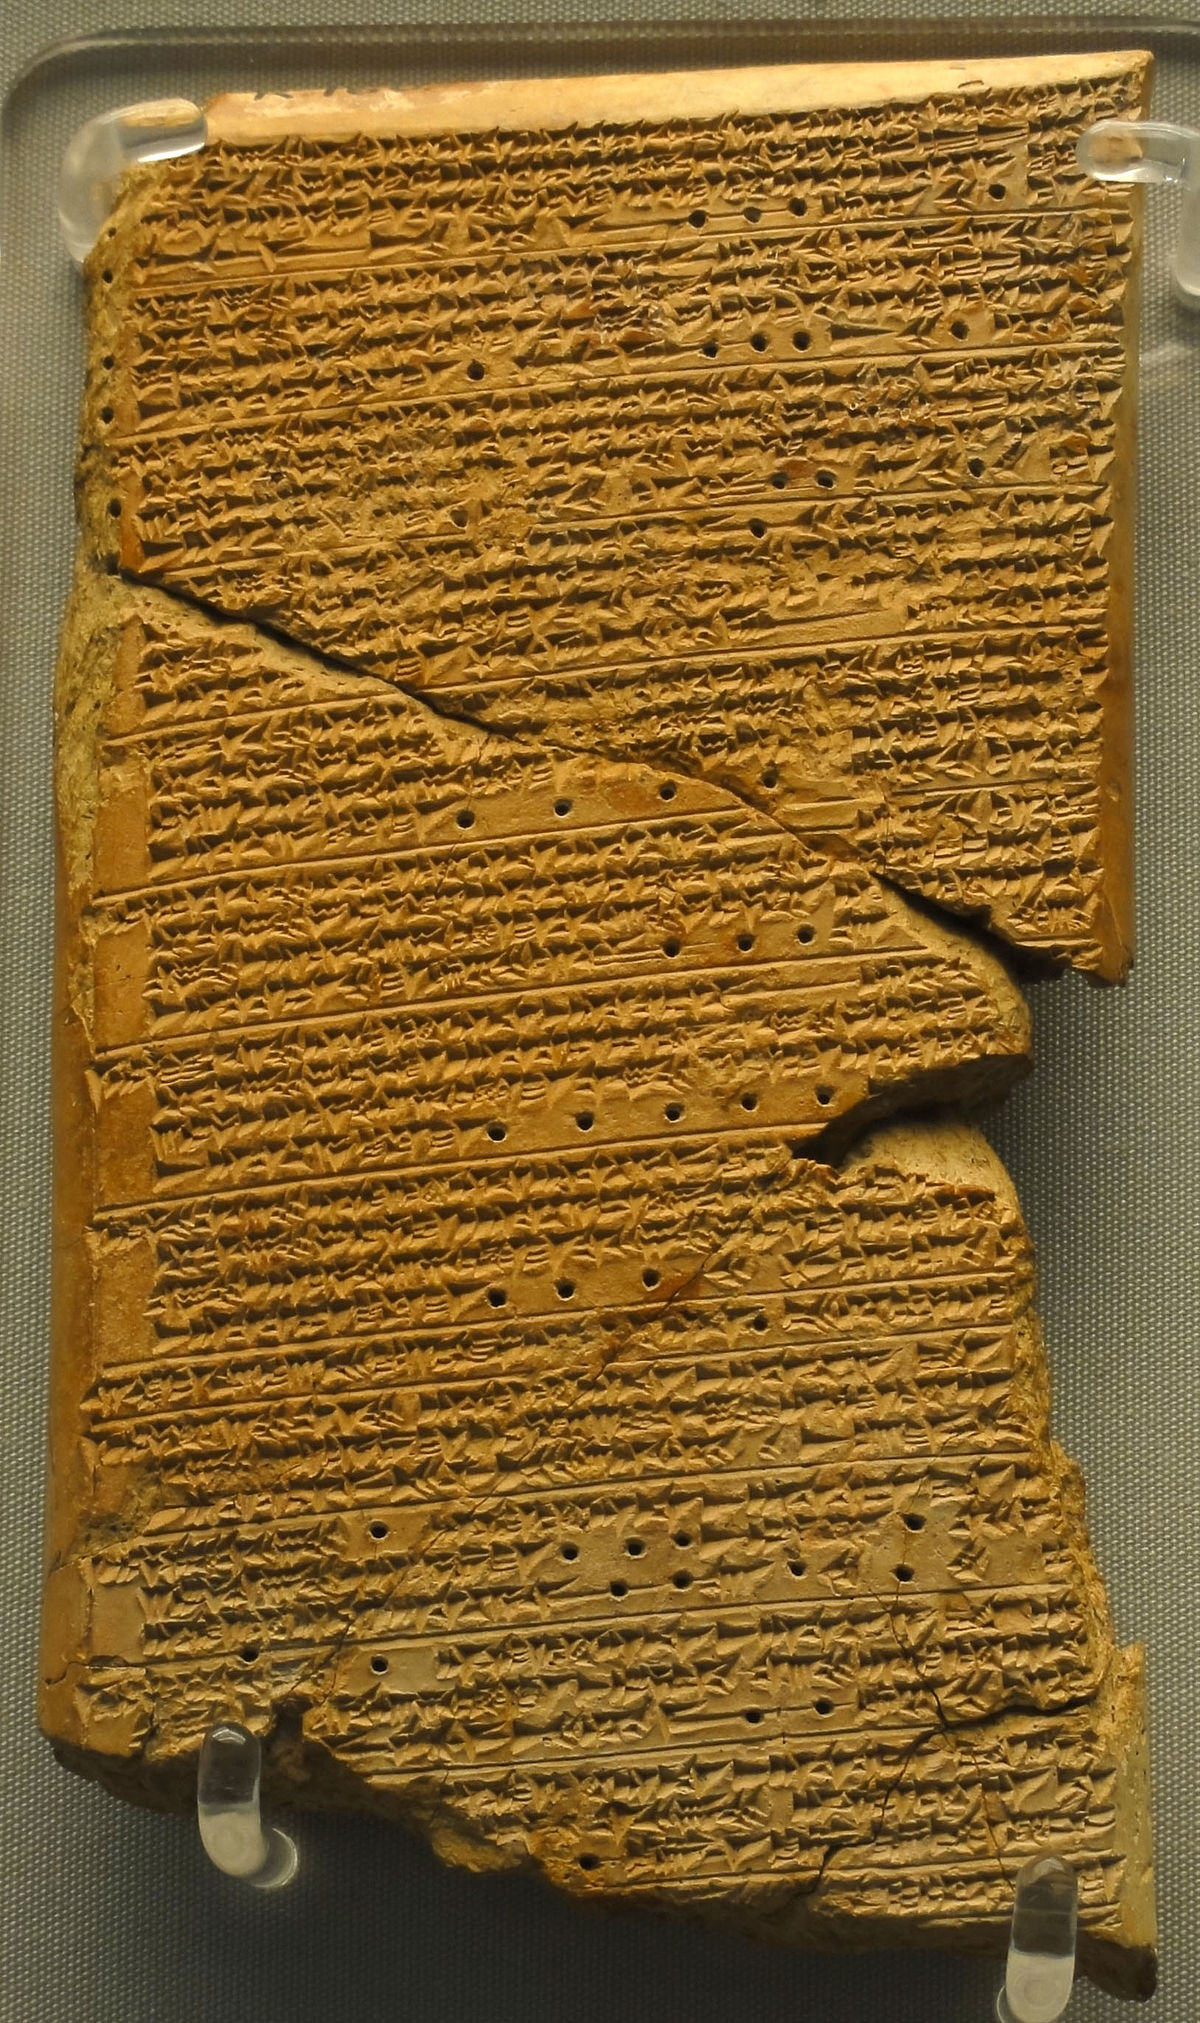 May 2003. A replica of a cuneiform tablet dating to 3100 B.C.